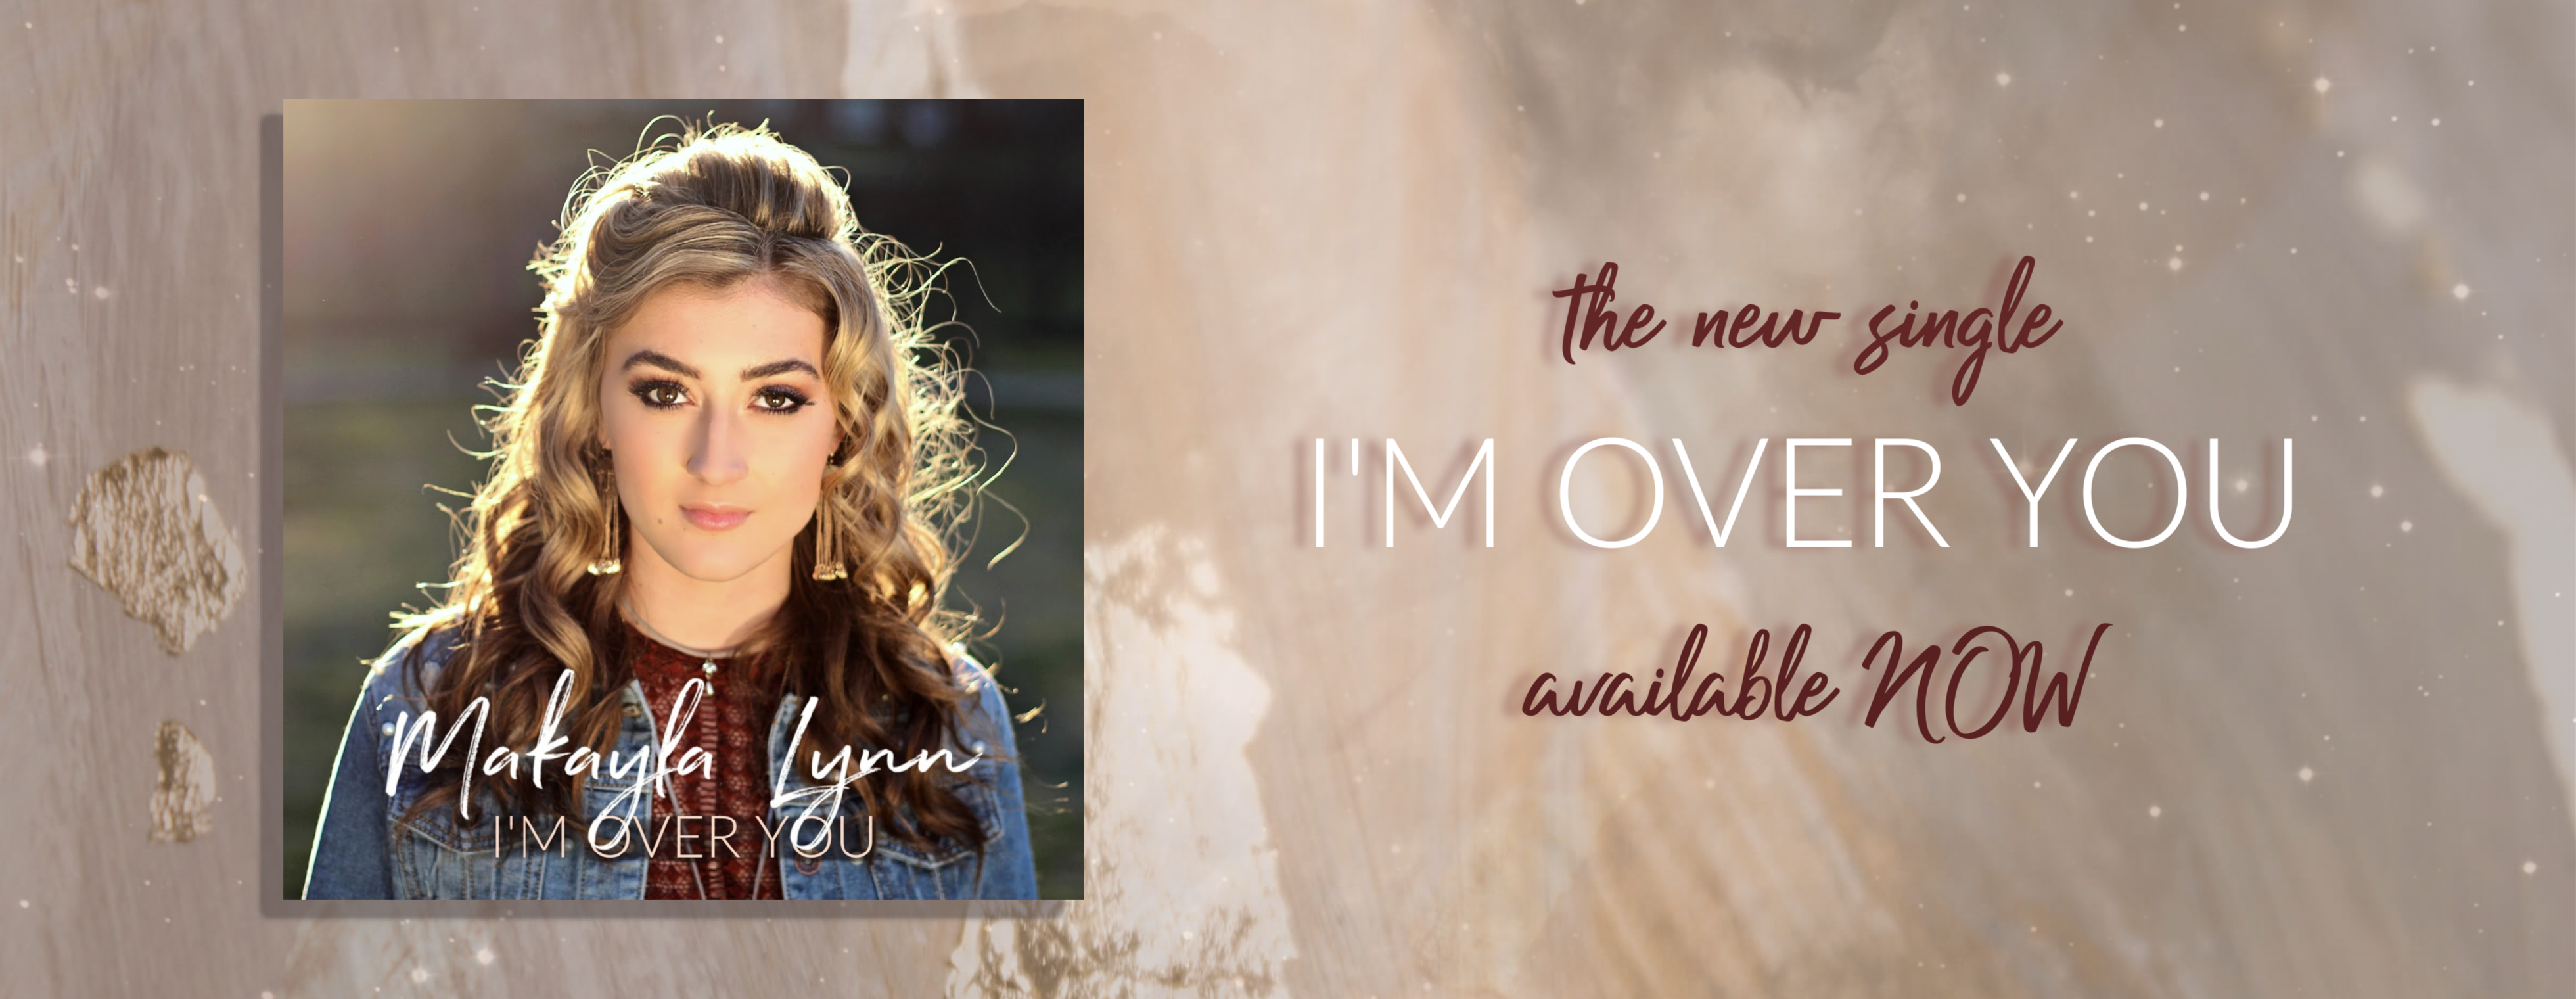 I'm Over You - Web Billboard 3920 x 1720